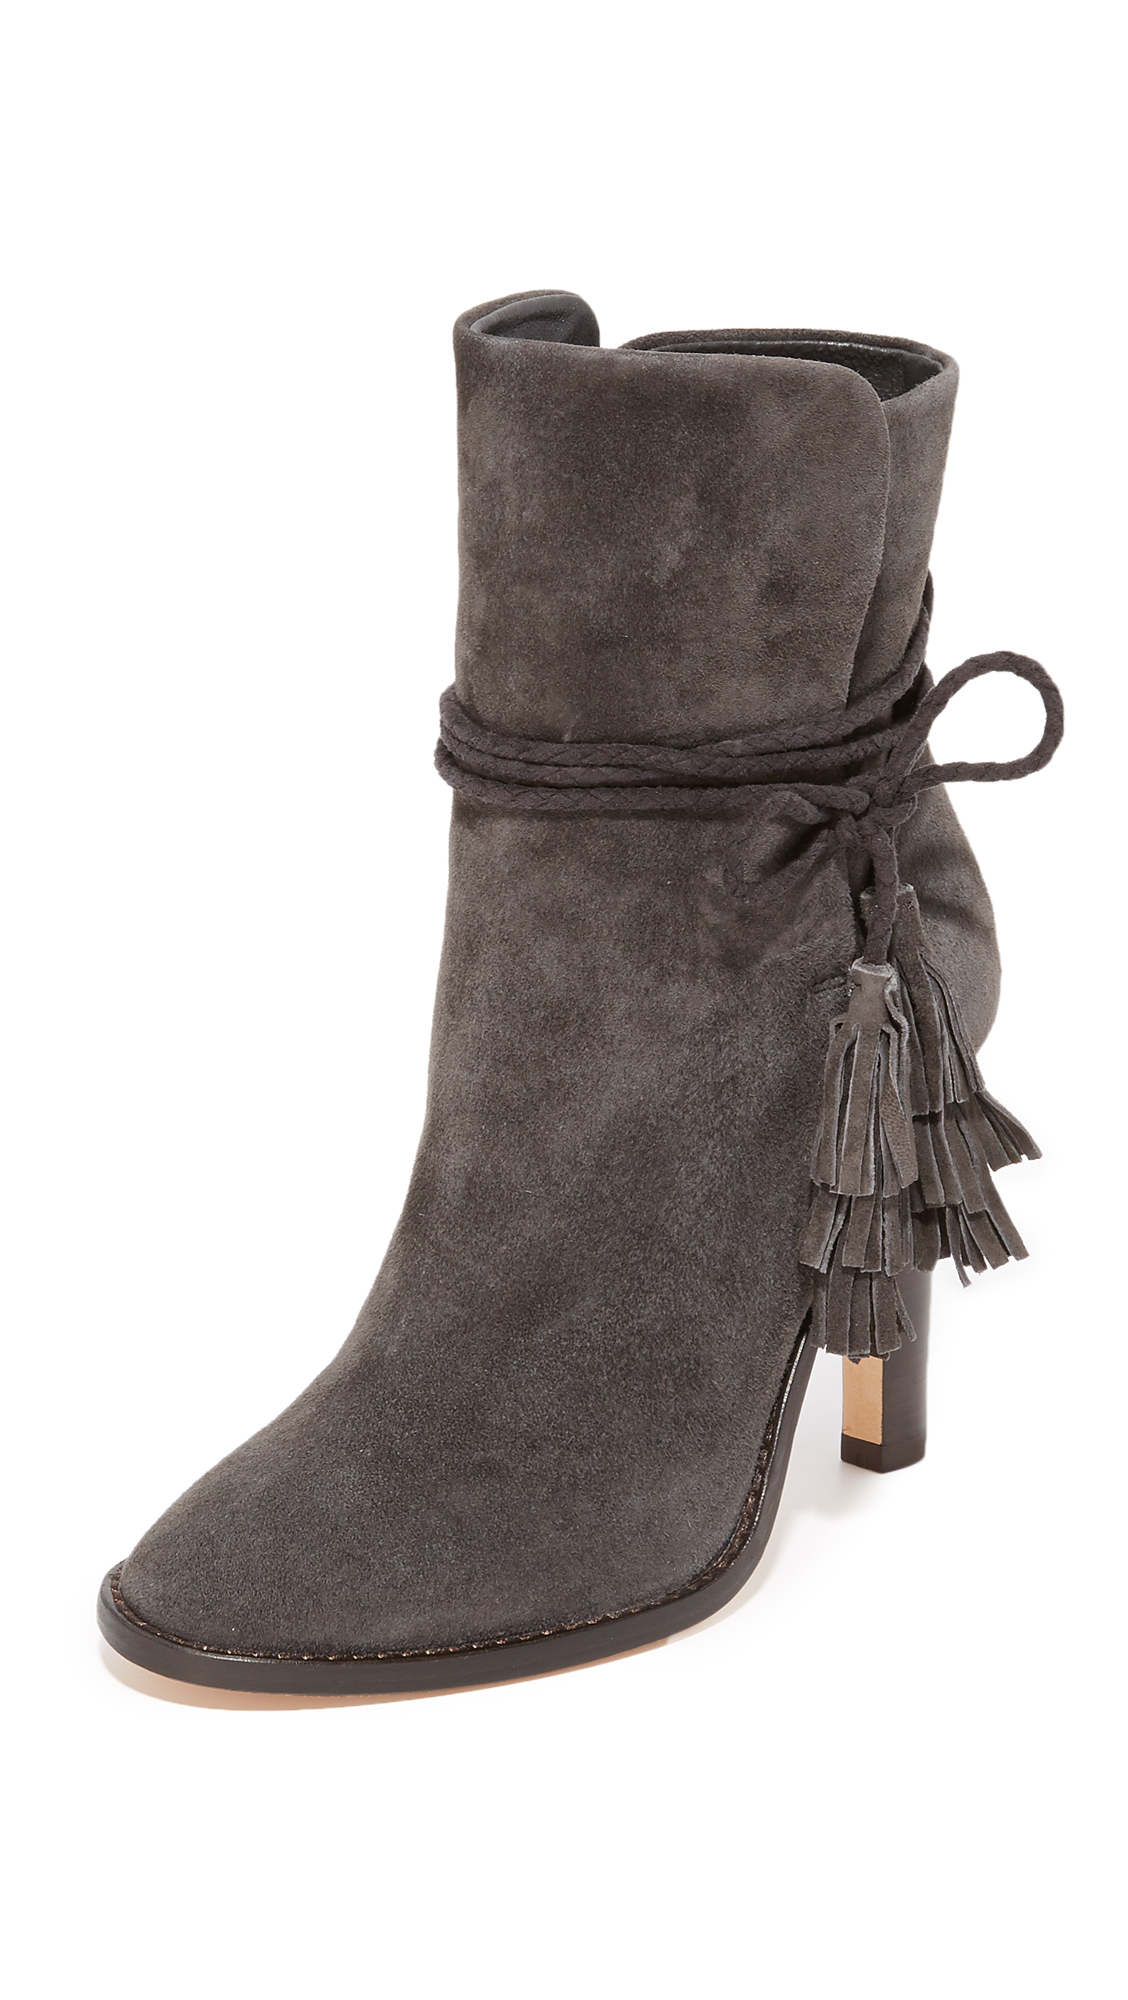 Joie Chap Tassel Booties - Graphite at Shopbop